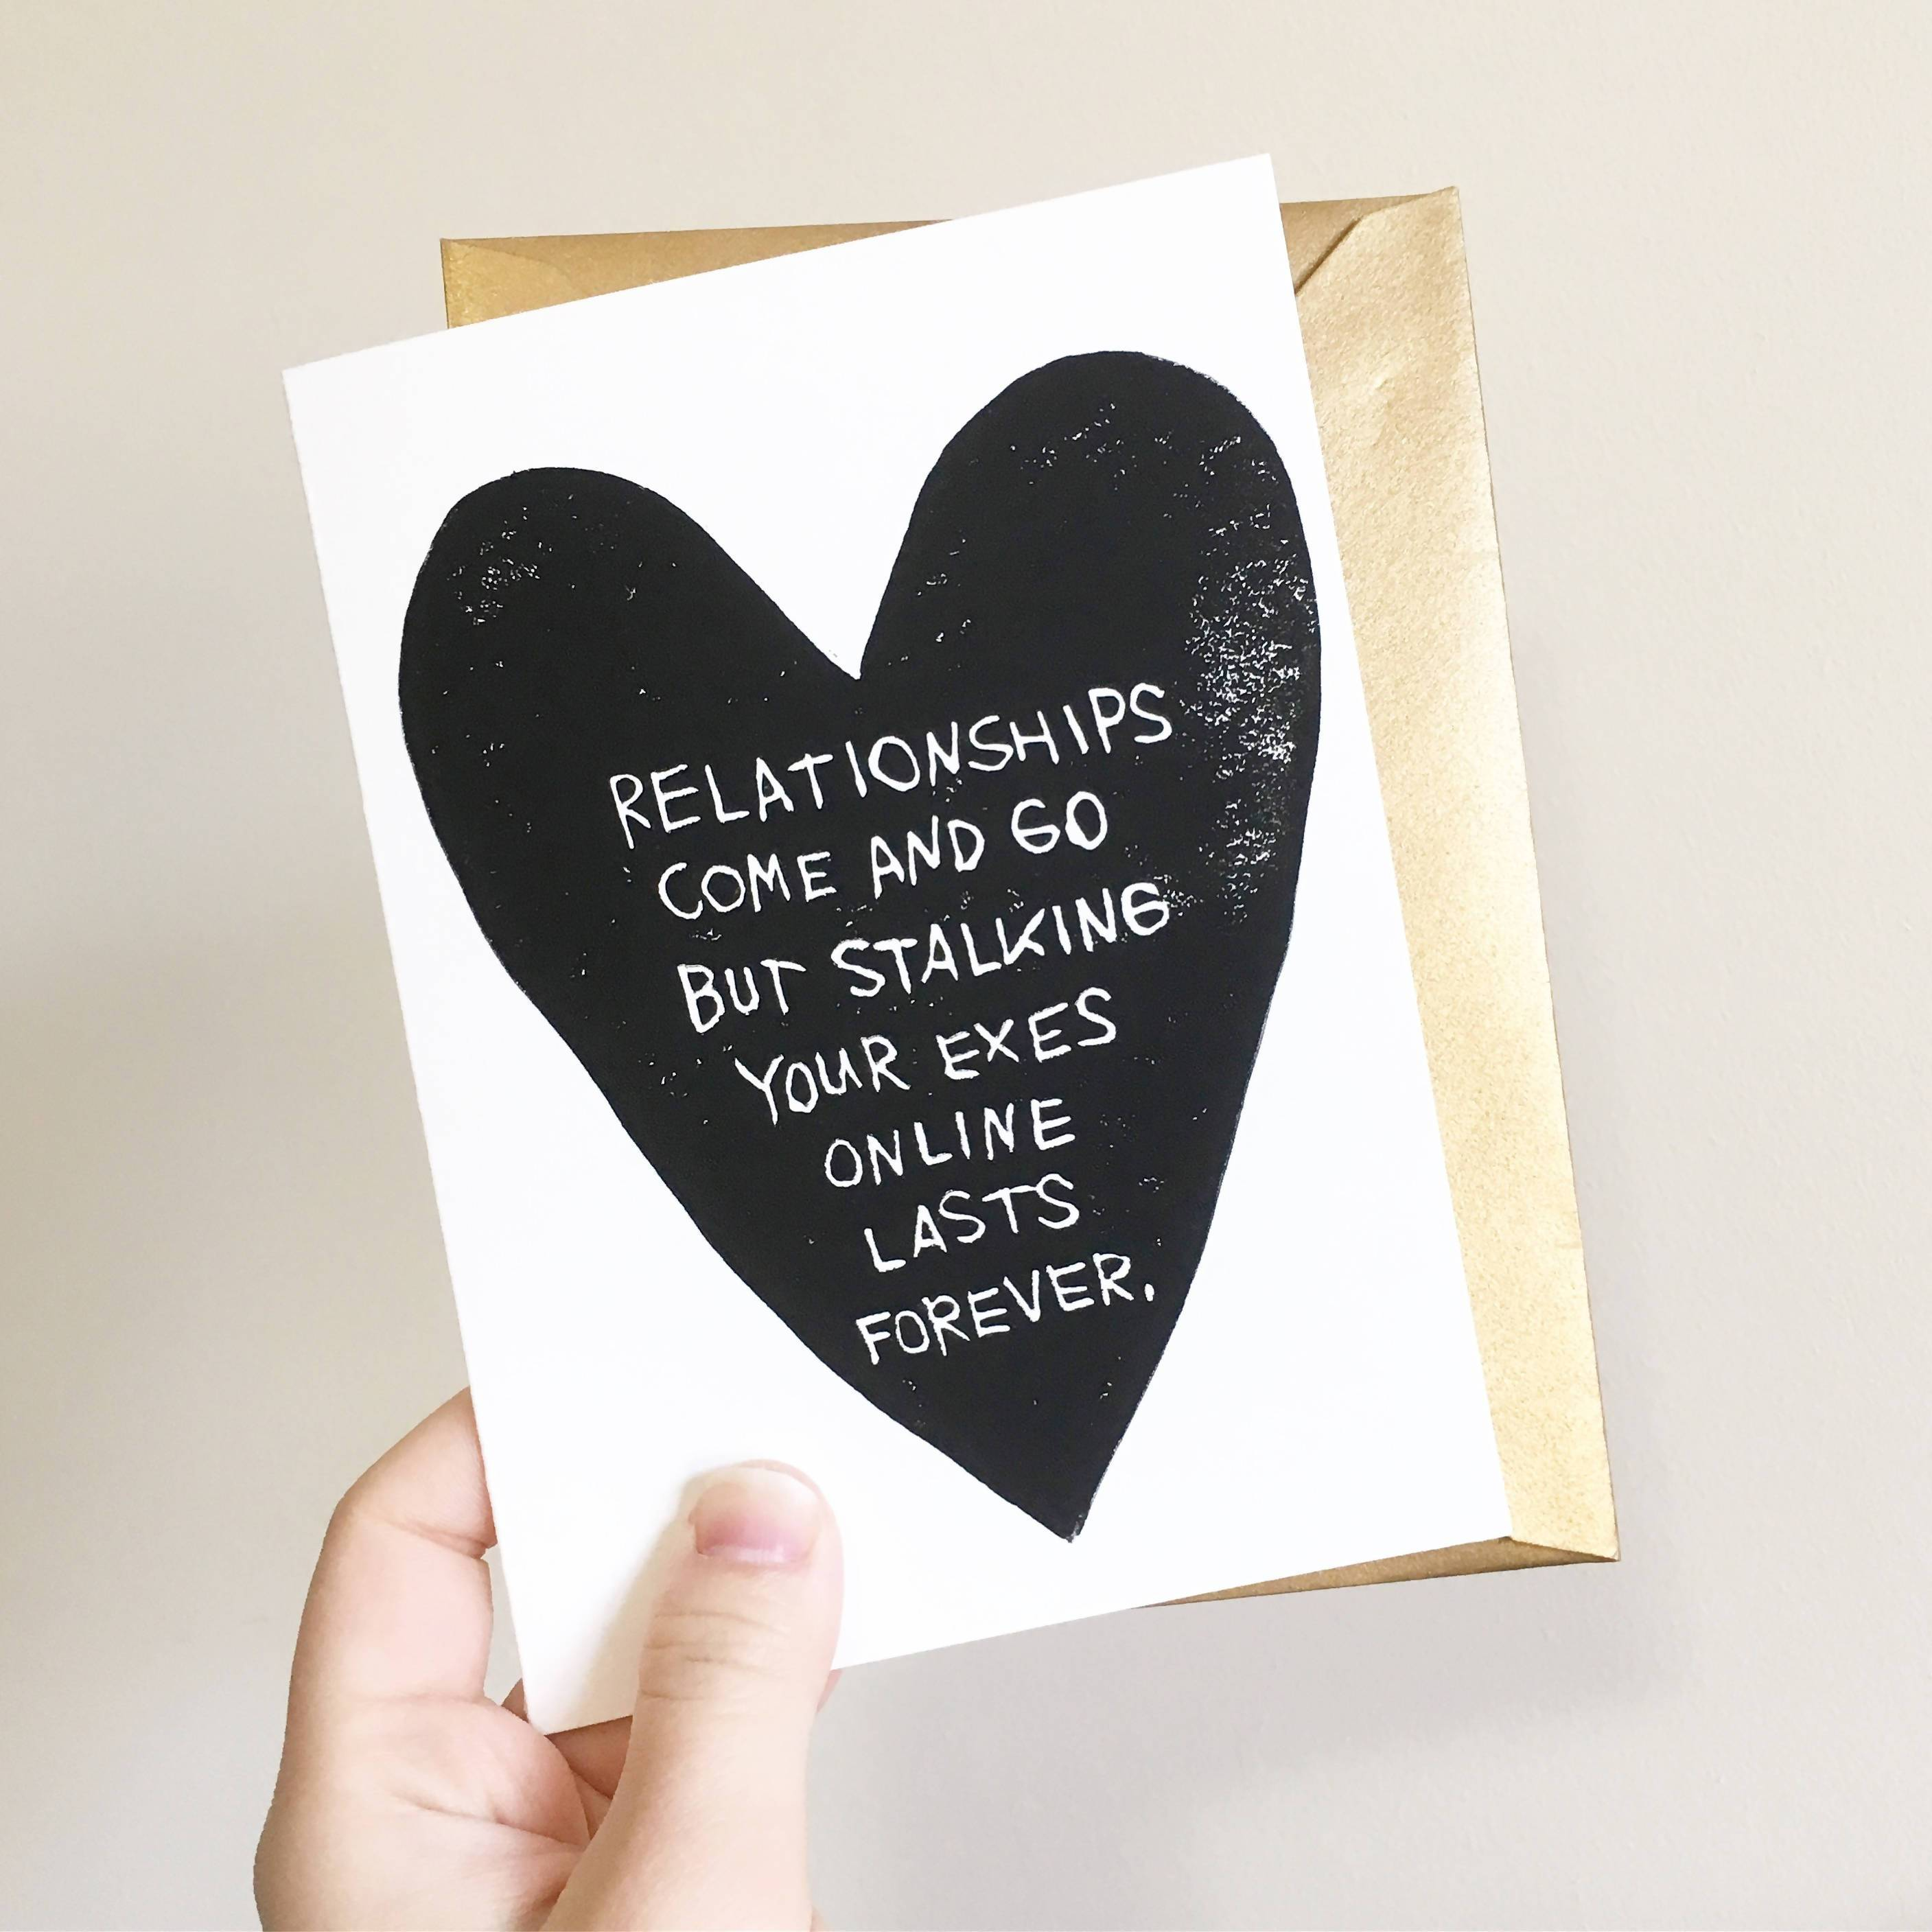 Stalking Your Exes - Hand-Printed Greeting Card - Valentine's Day Cards - Ping Hatta. Studio - Naiise